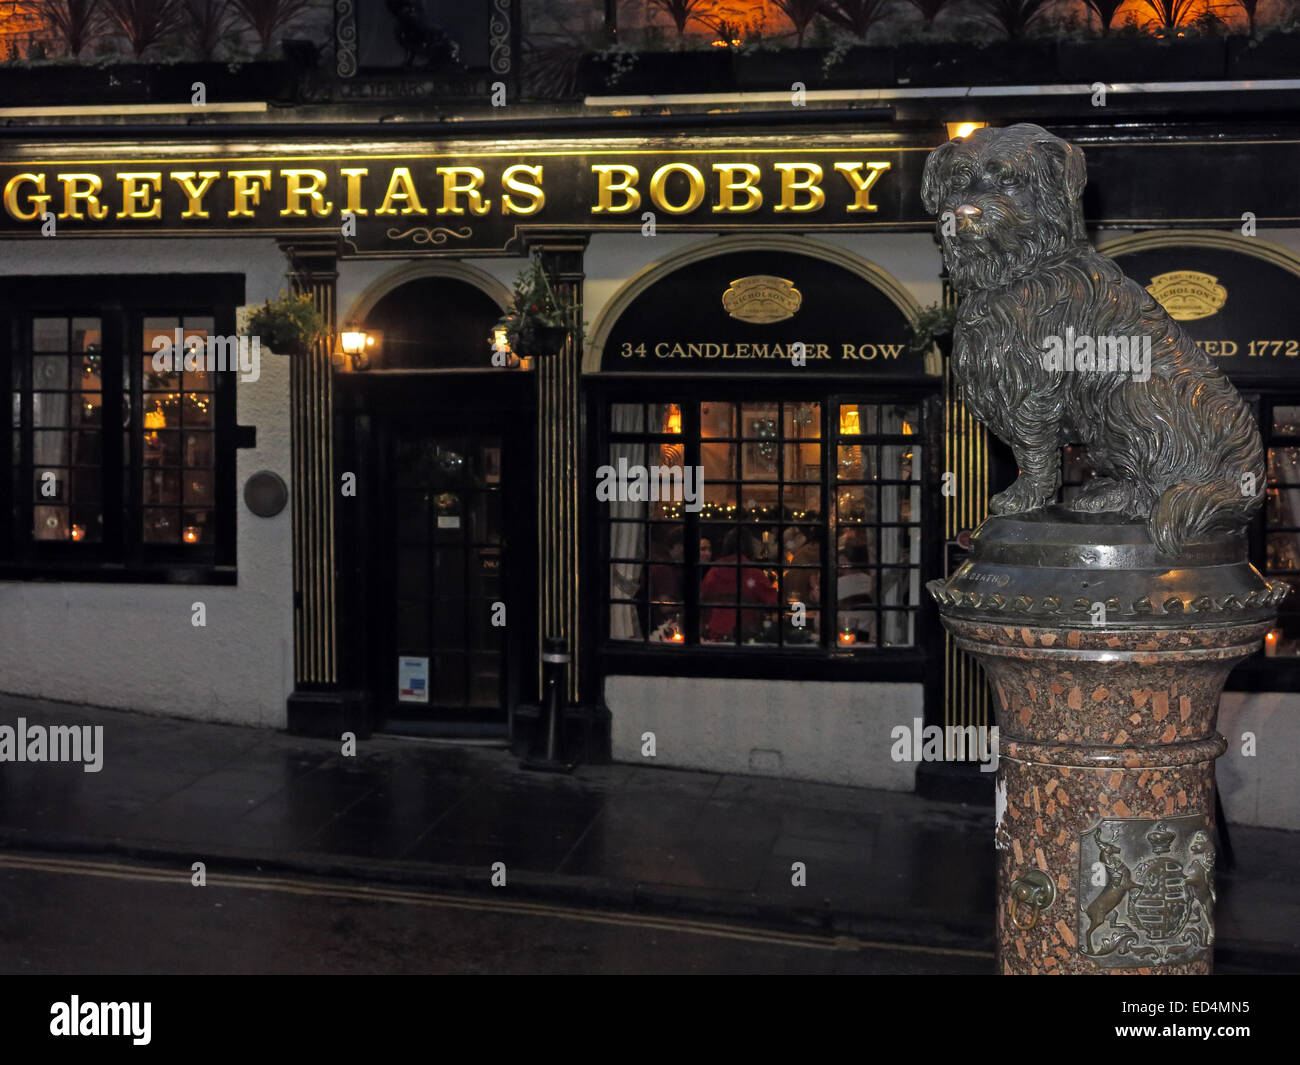 34,Candlemaker,Row,city,of,tourist,tourism,attraction,ale,house,alehouse,CAMRA,real,royal,companion,Old,Town,brass,Dog,outside,Lothians,Scotland,UK,Nicholson,freehouse,company,bar,Chambers,Street,Grassmarket,and,George,IV,Bridge,Georgian,houses,scruffy,Skye,terrier,EH12QE,EH1,2QE,GoTonySmith bars different shot of near graveyard traditional,Scotlands History,Scotlands History